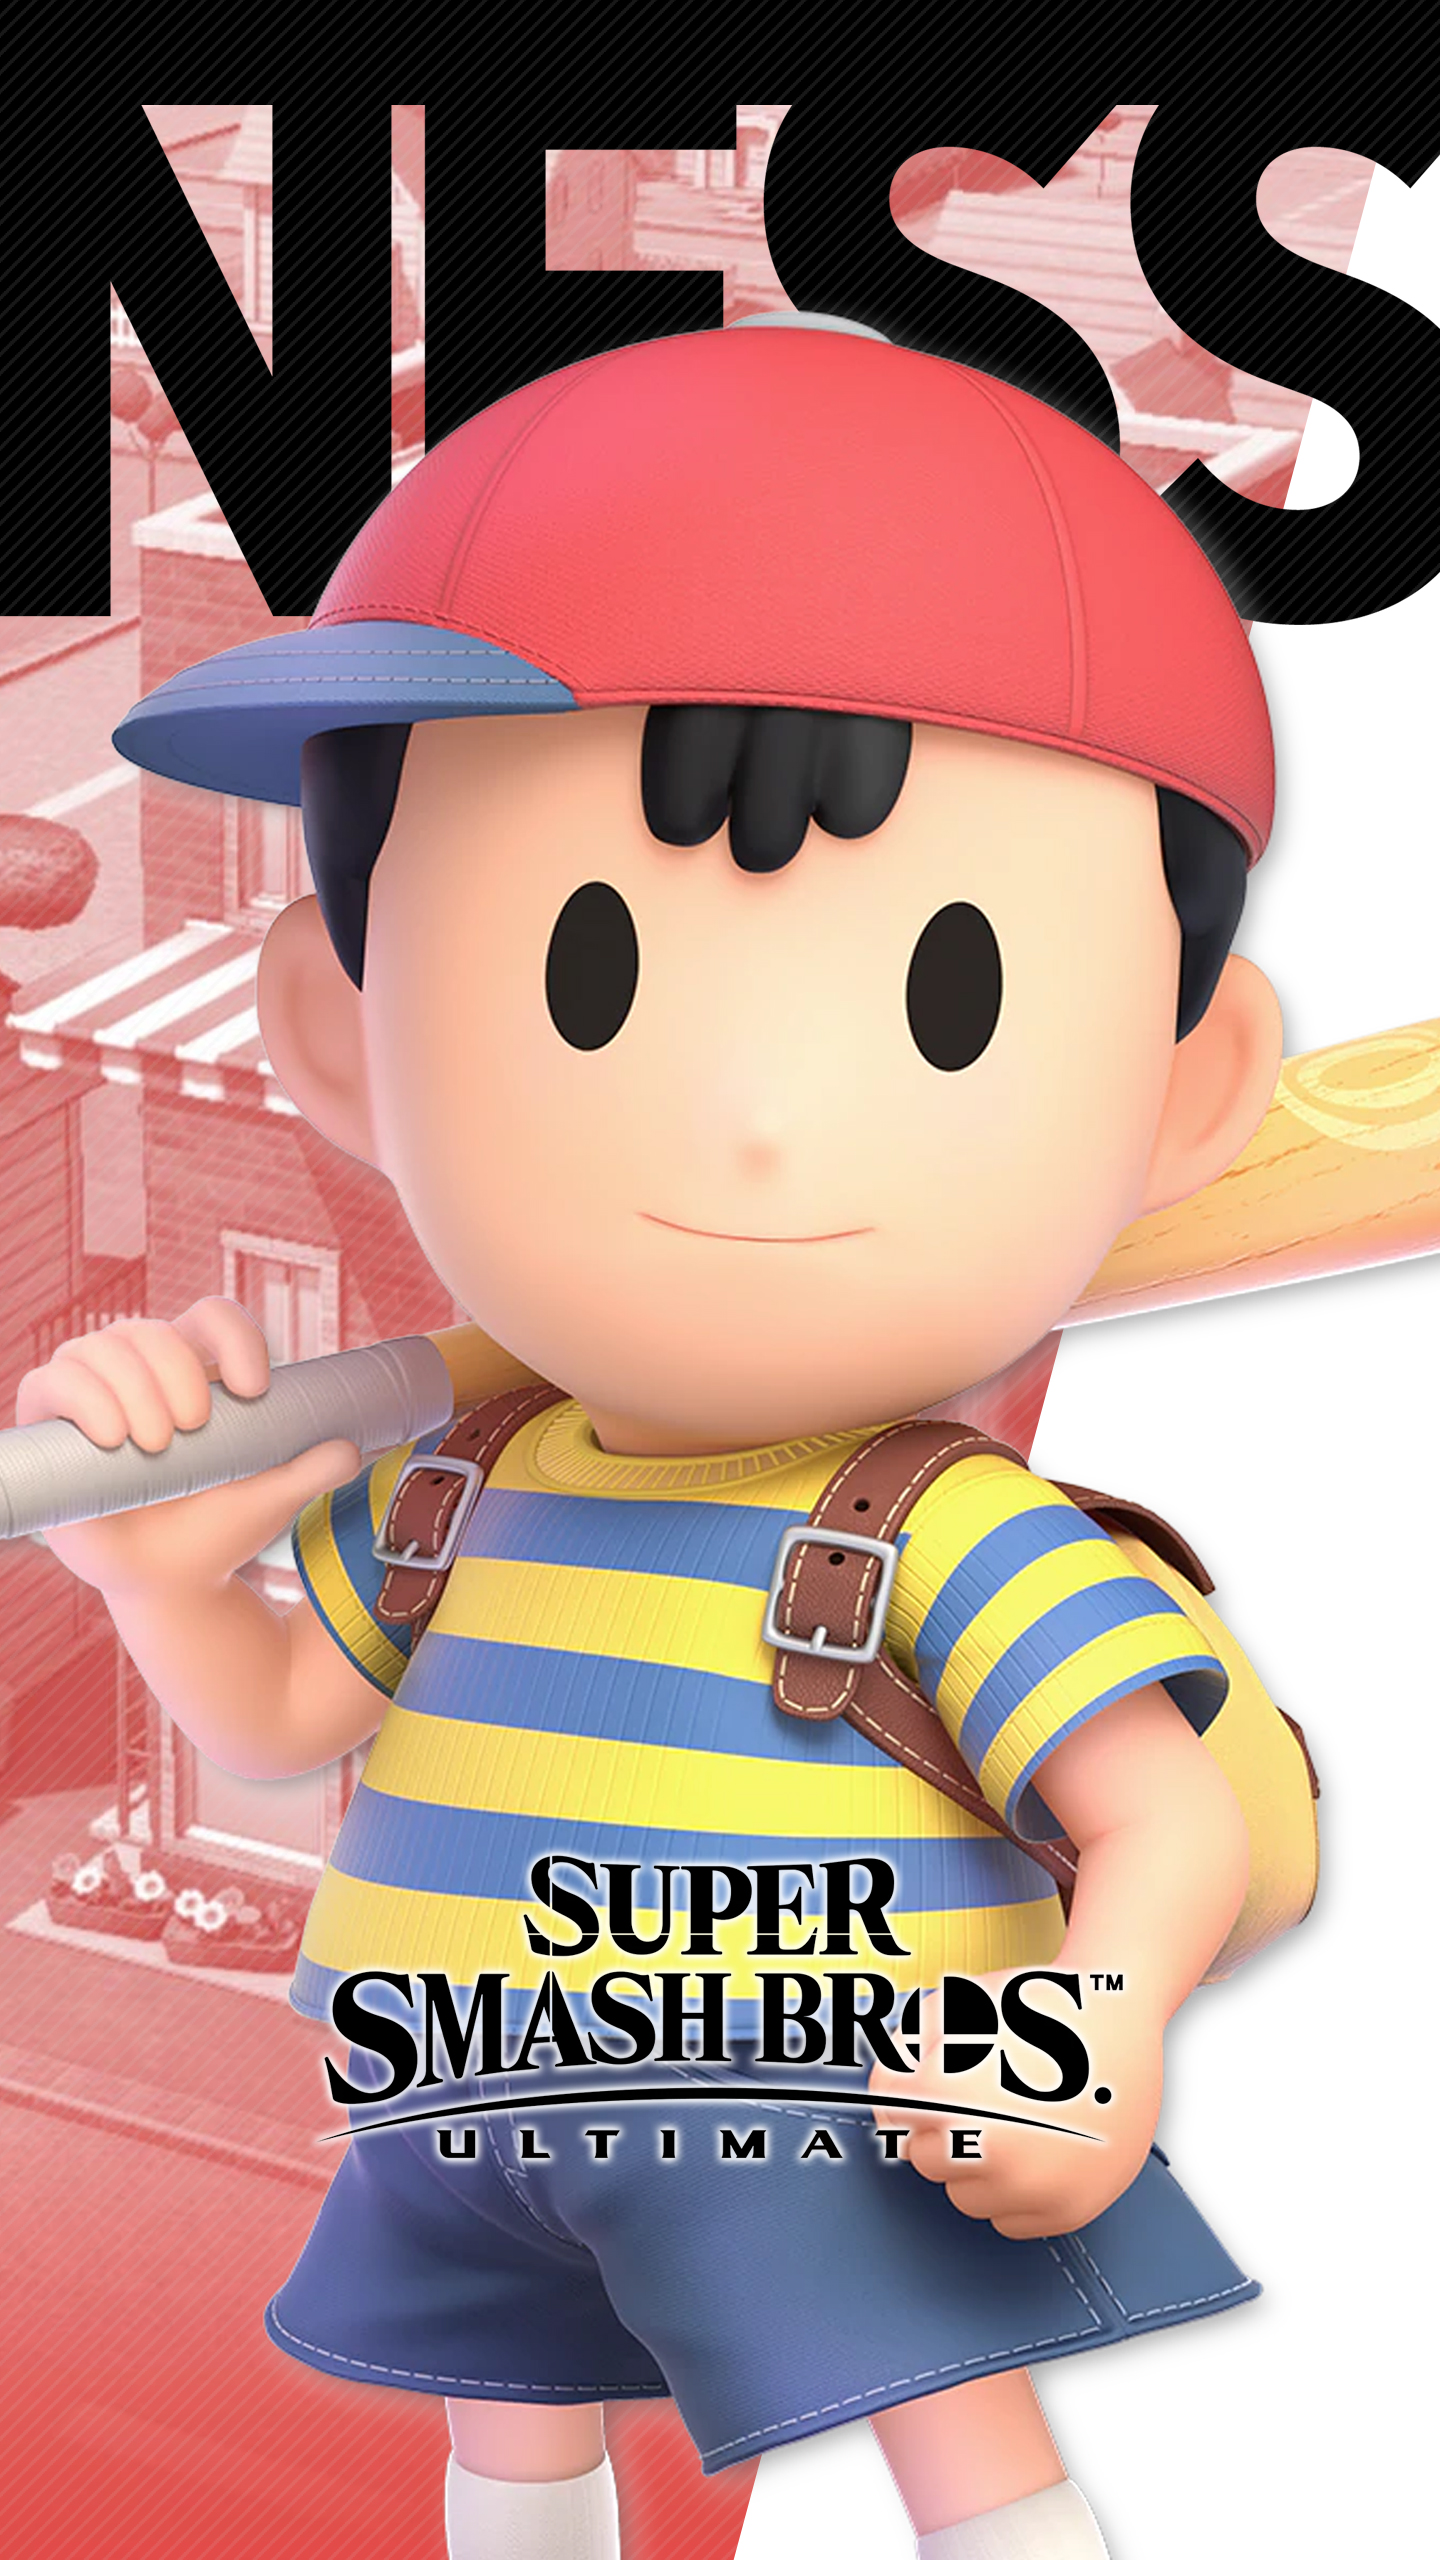 Iphone Se Wallpaper Size Super Smash Bros Ultimate Ness Wallpapers Cat With Monocle